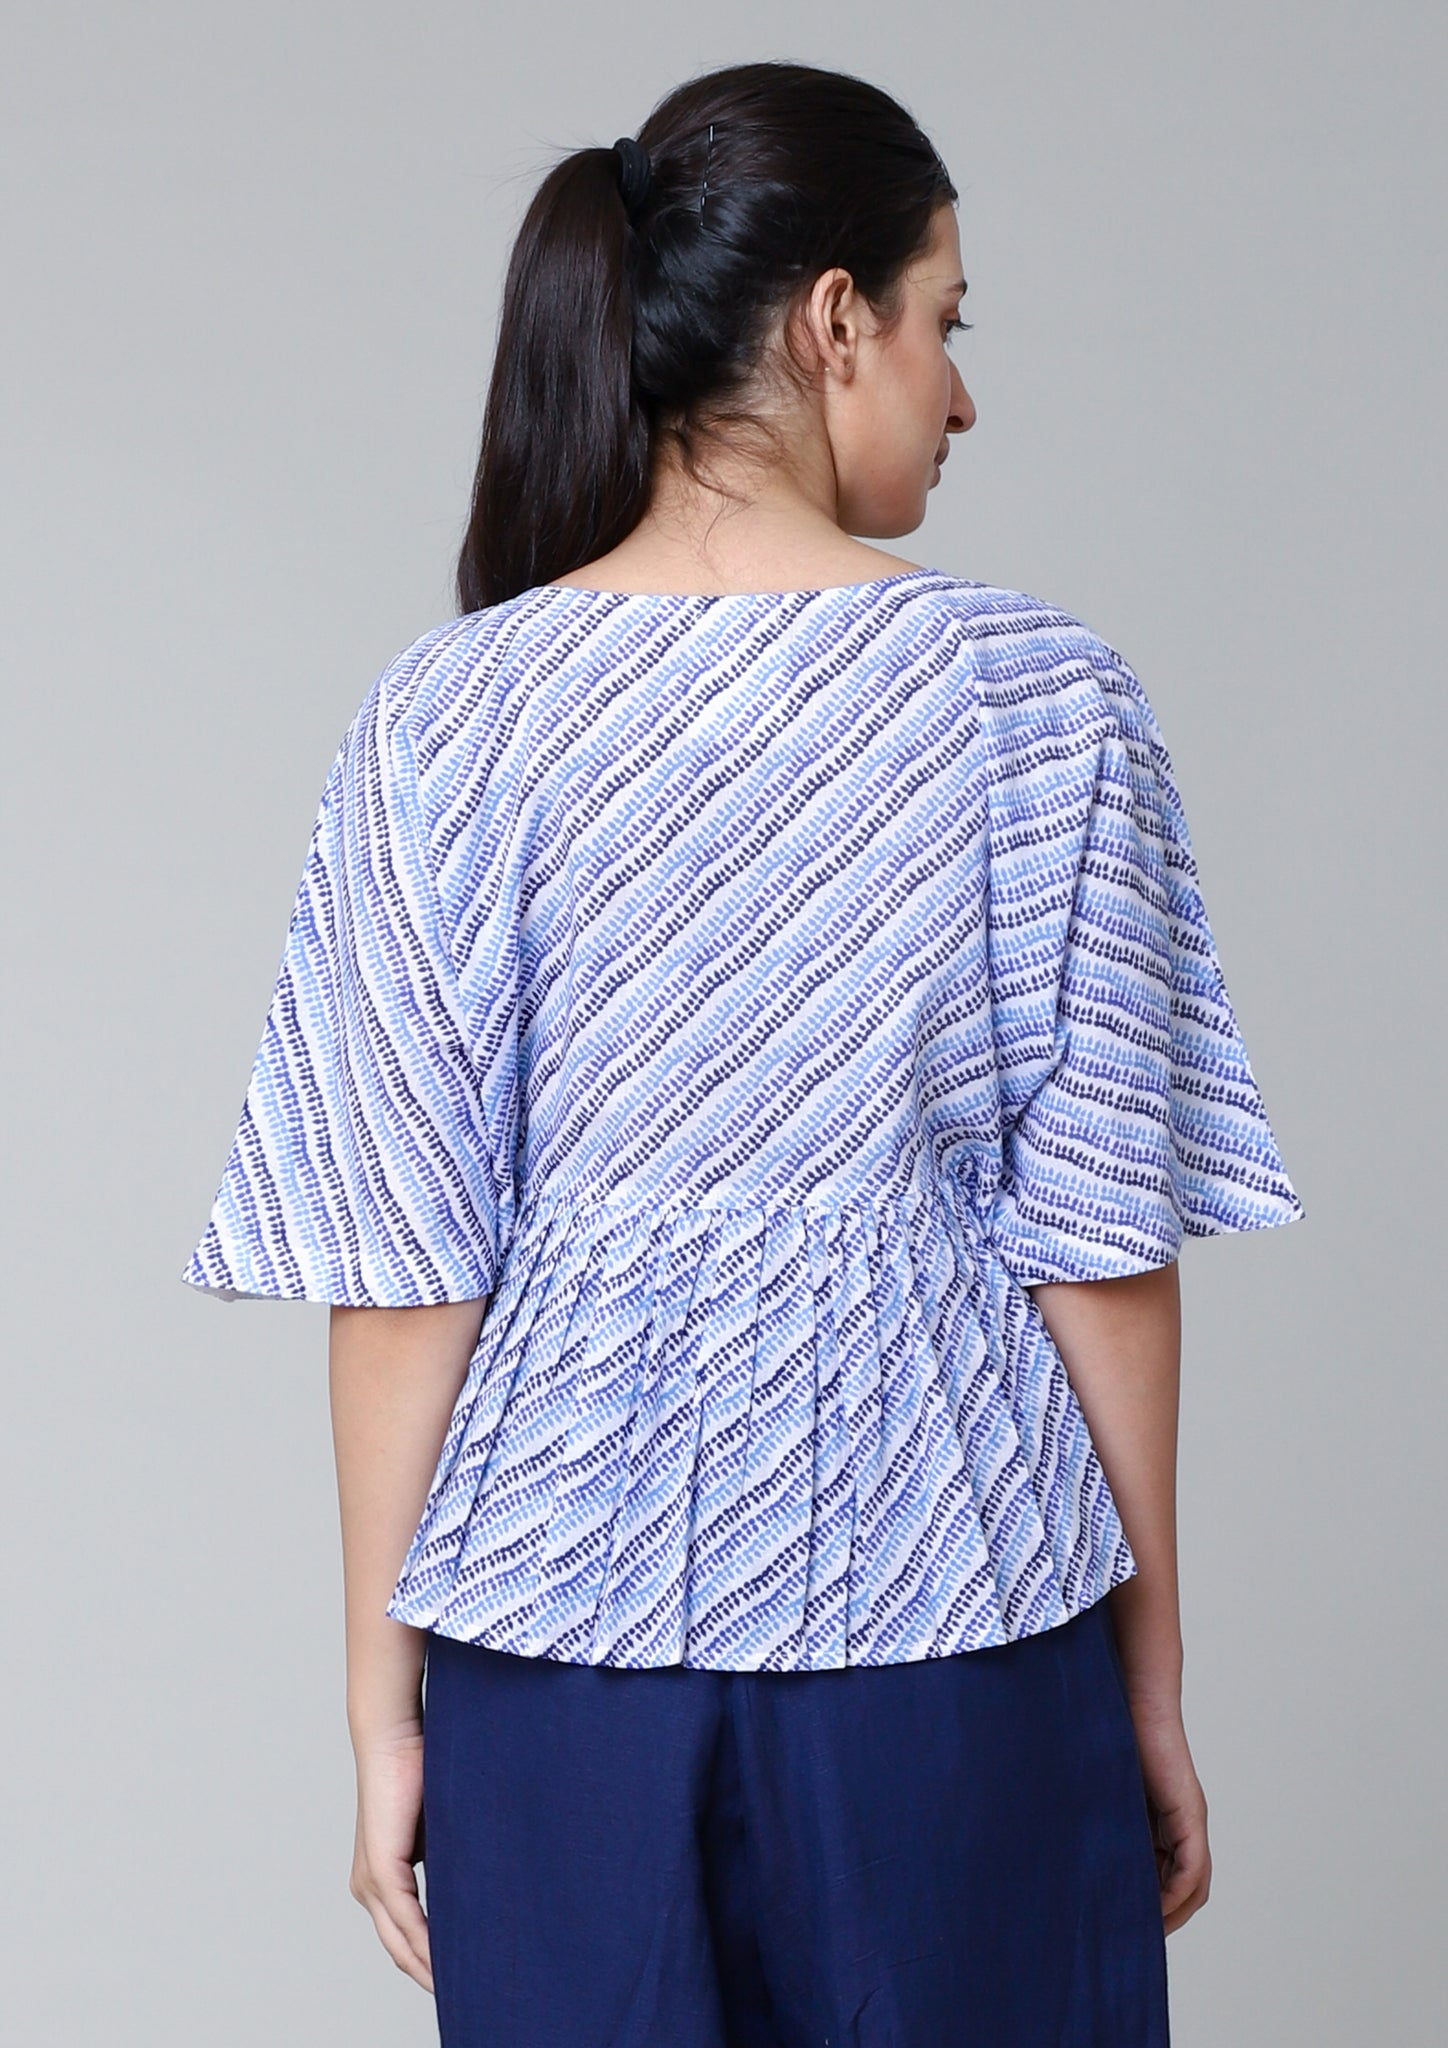 SEAMLESS SLEEVED,GATHERED TOP